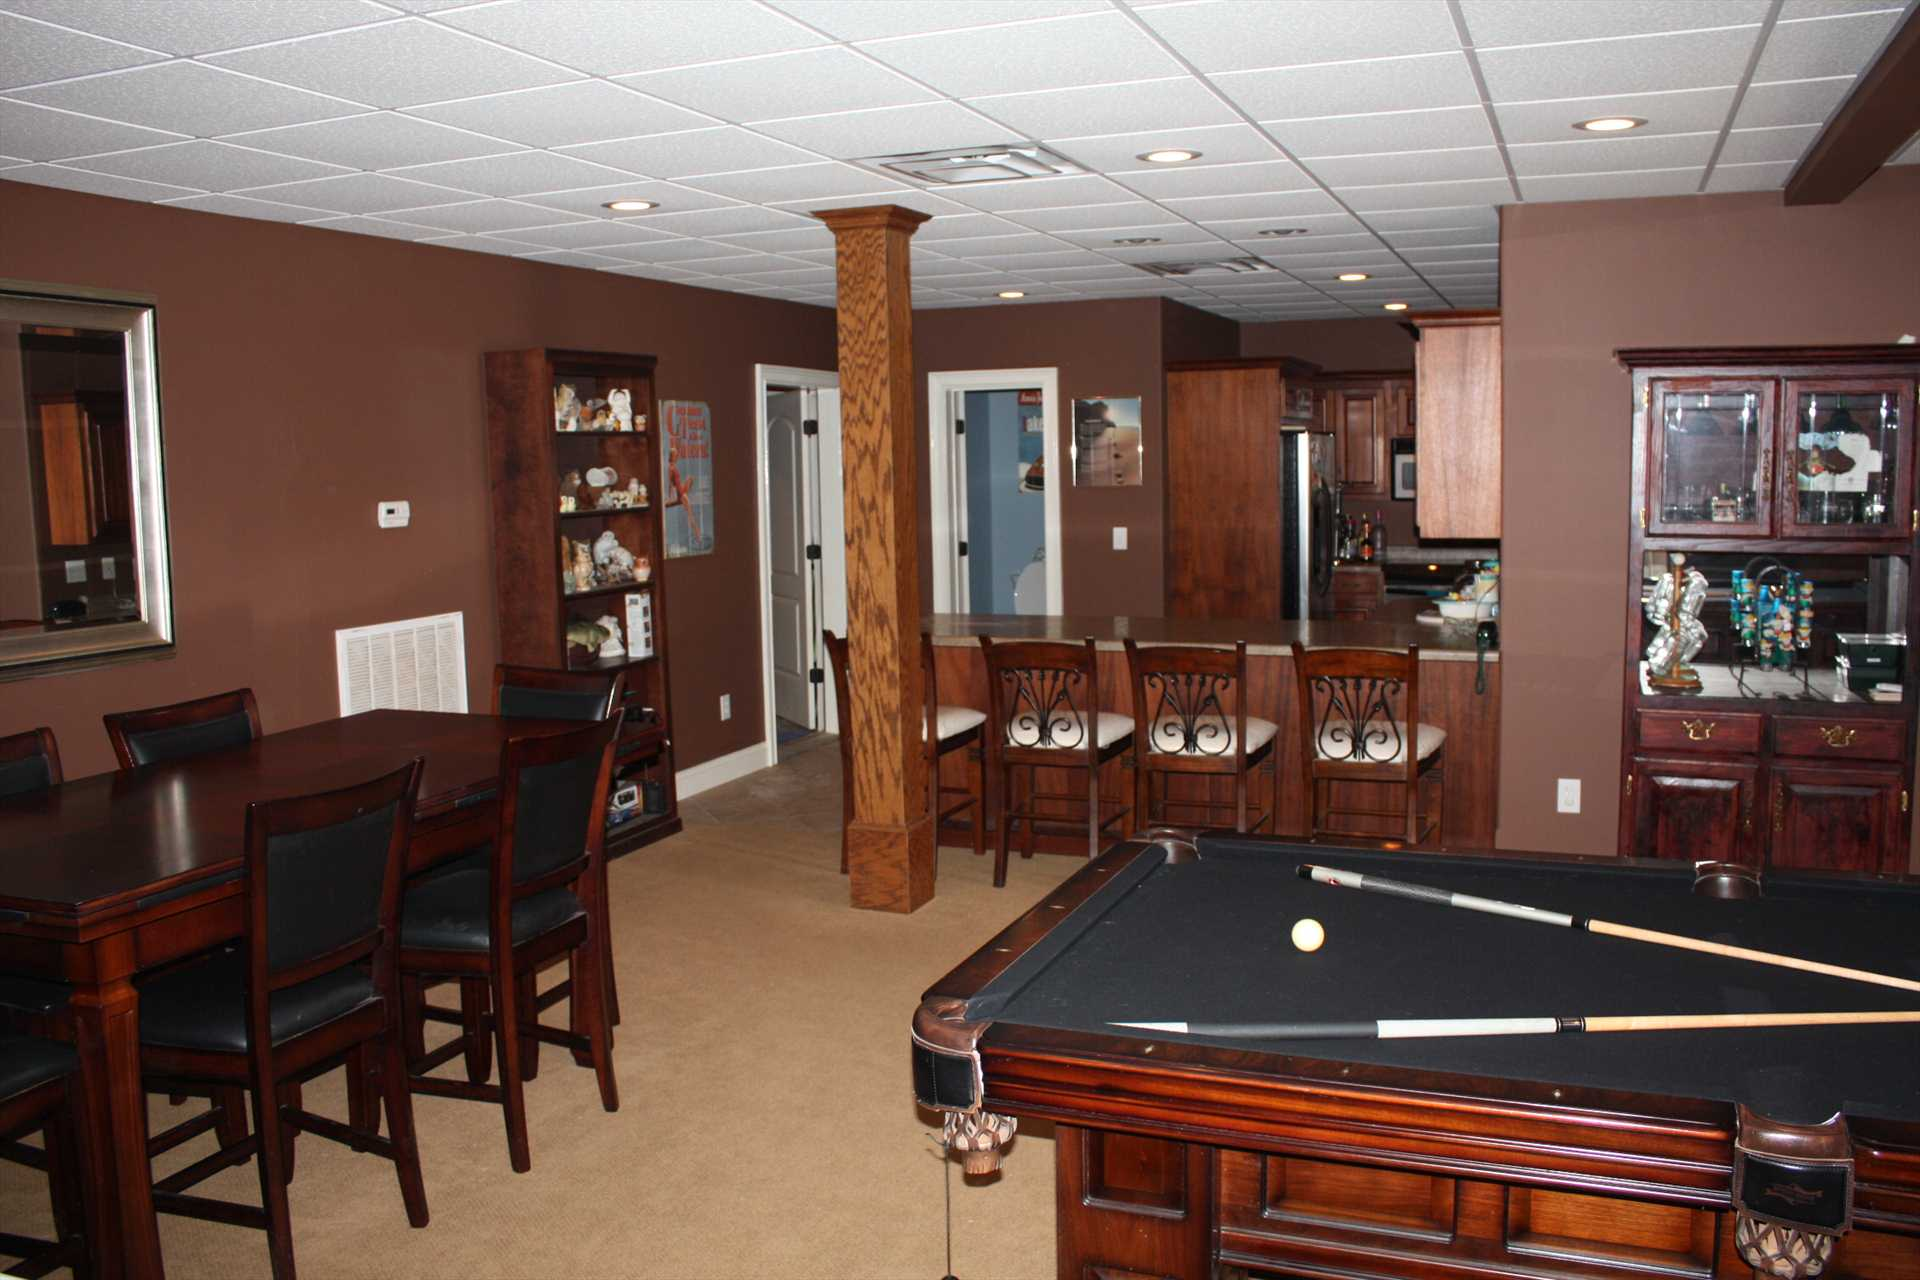 Basement game room and kitchen